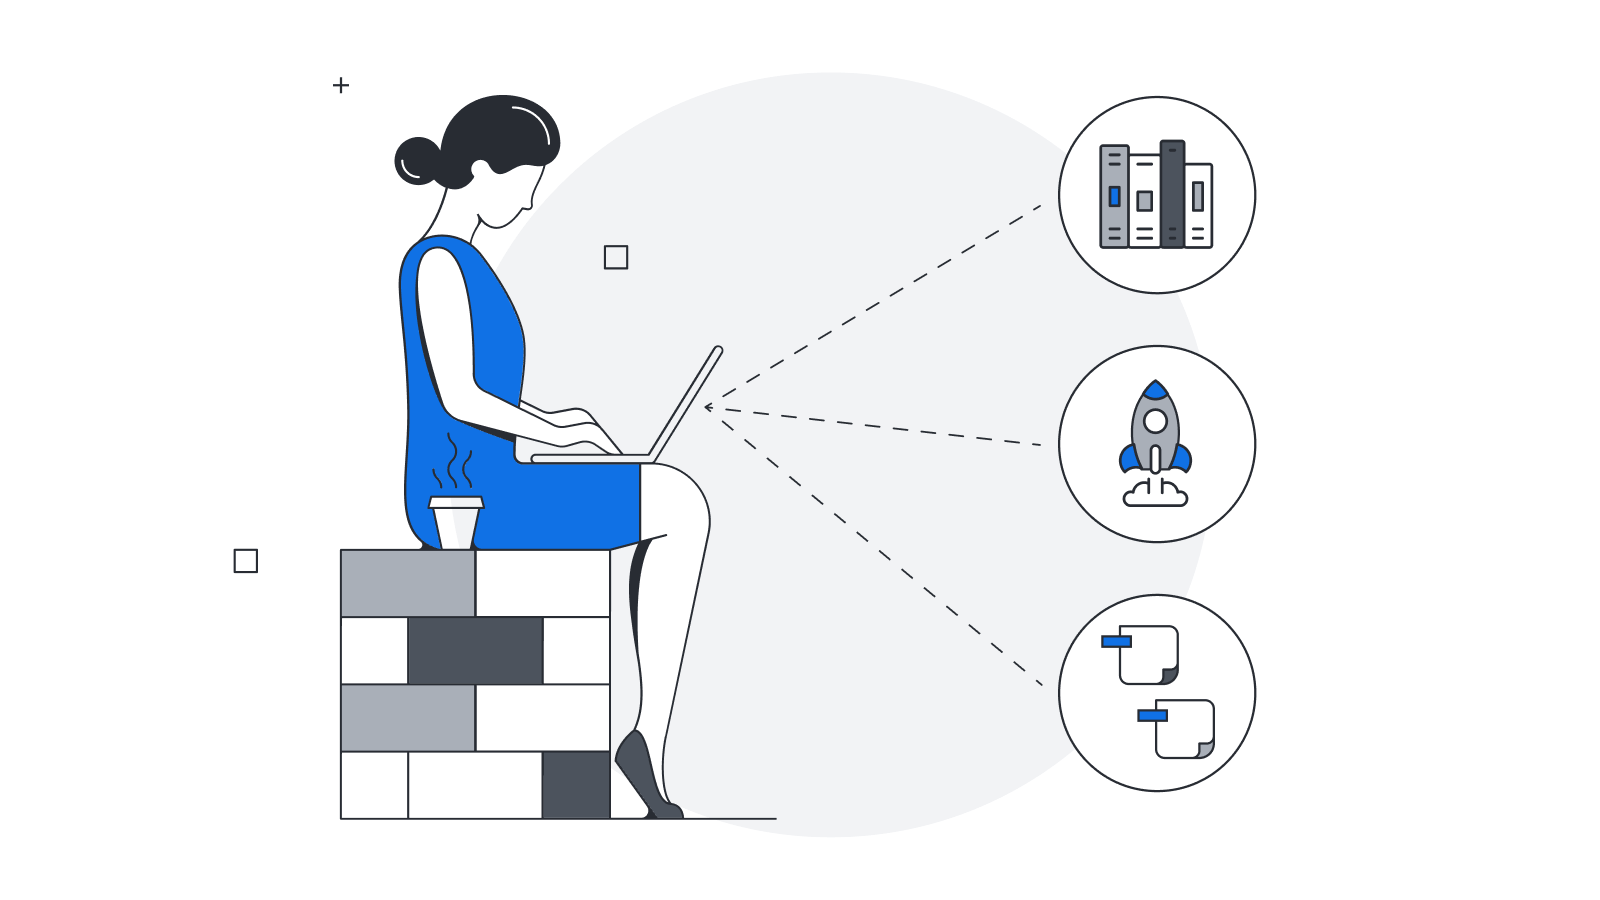 Illustration of a woman using a laptop to help organize her thoughts